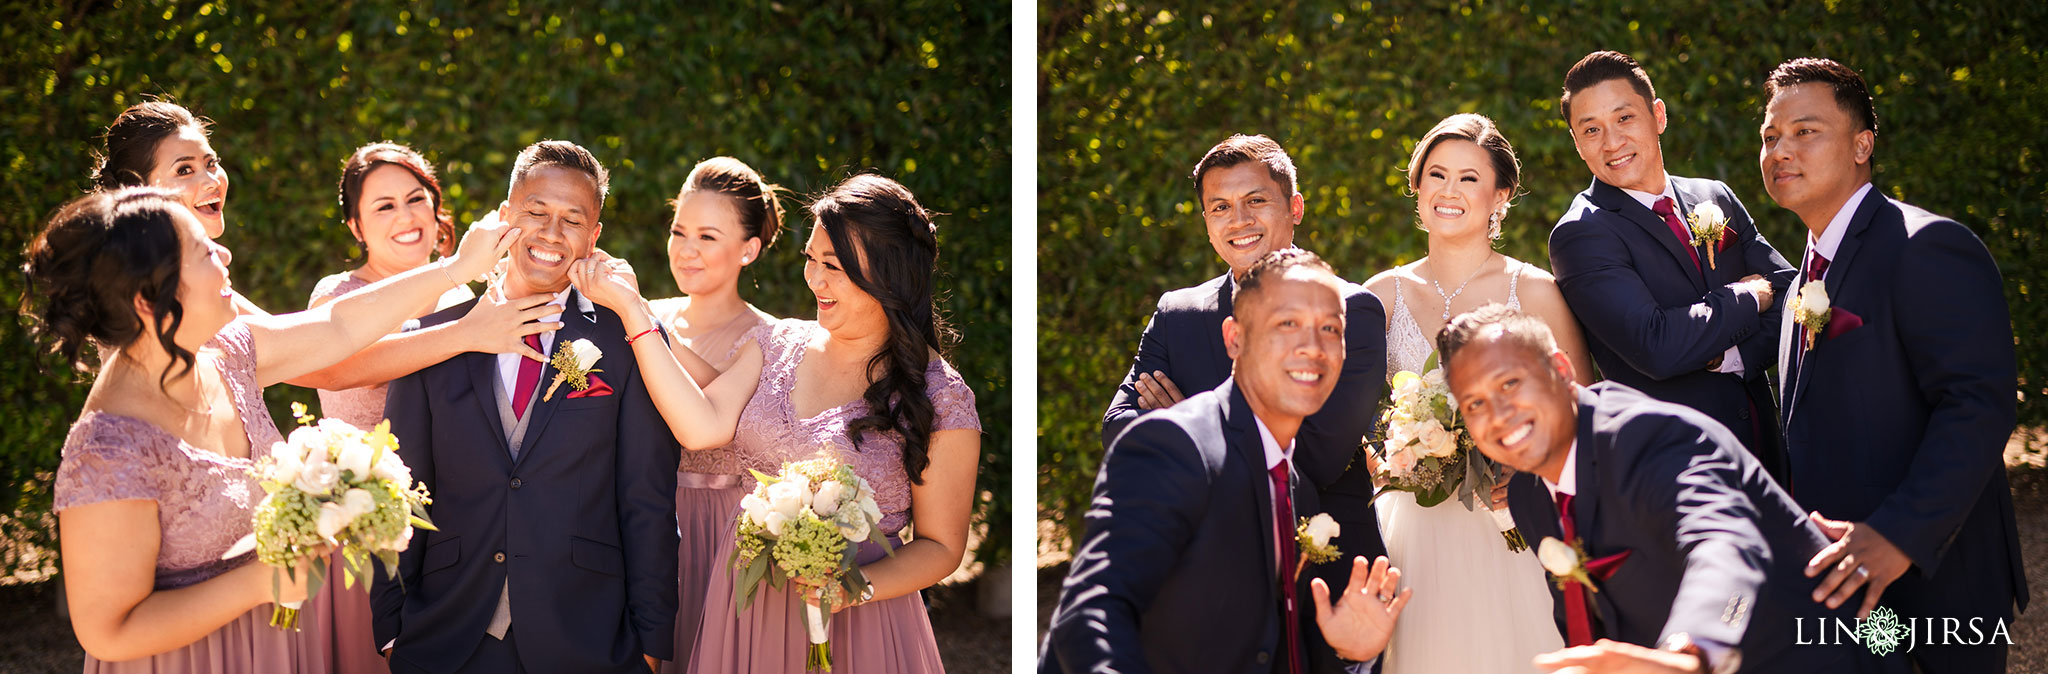 21 Hotel Irvine Orange County Wedding Photography